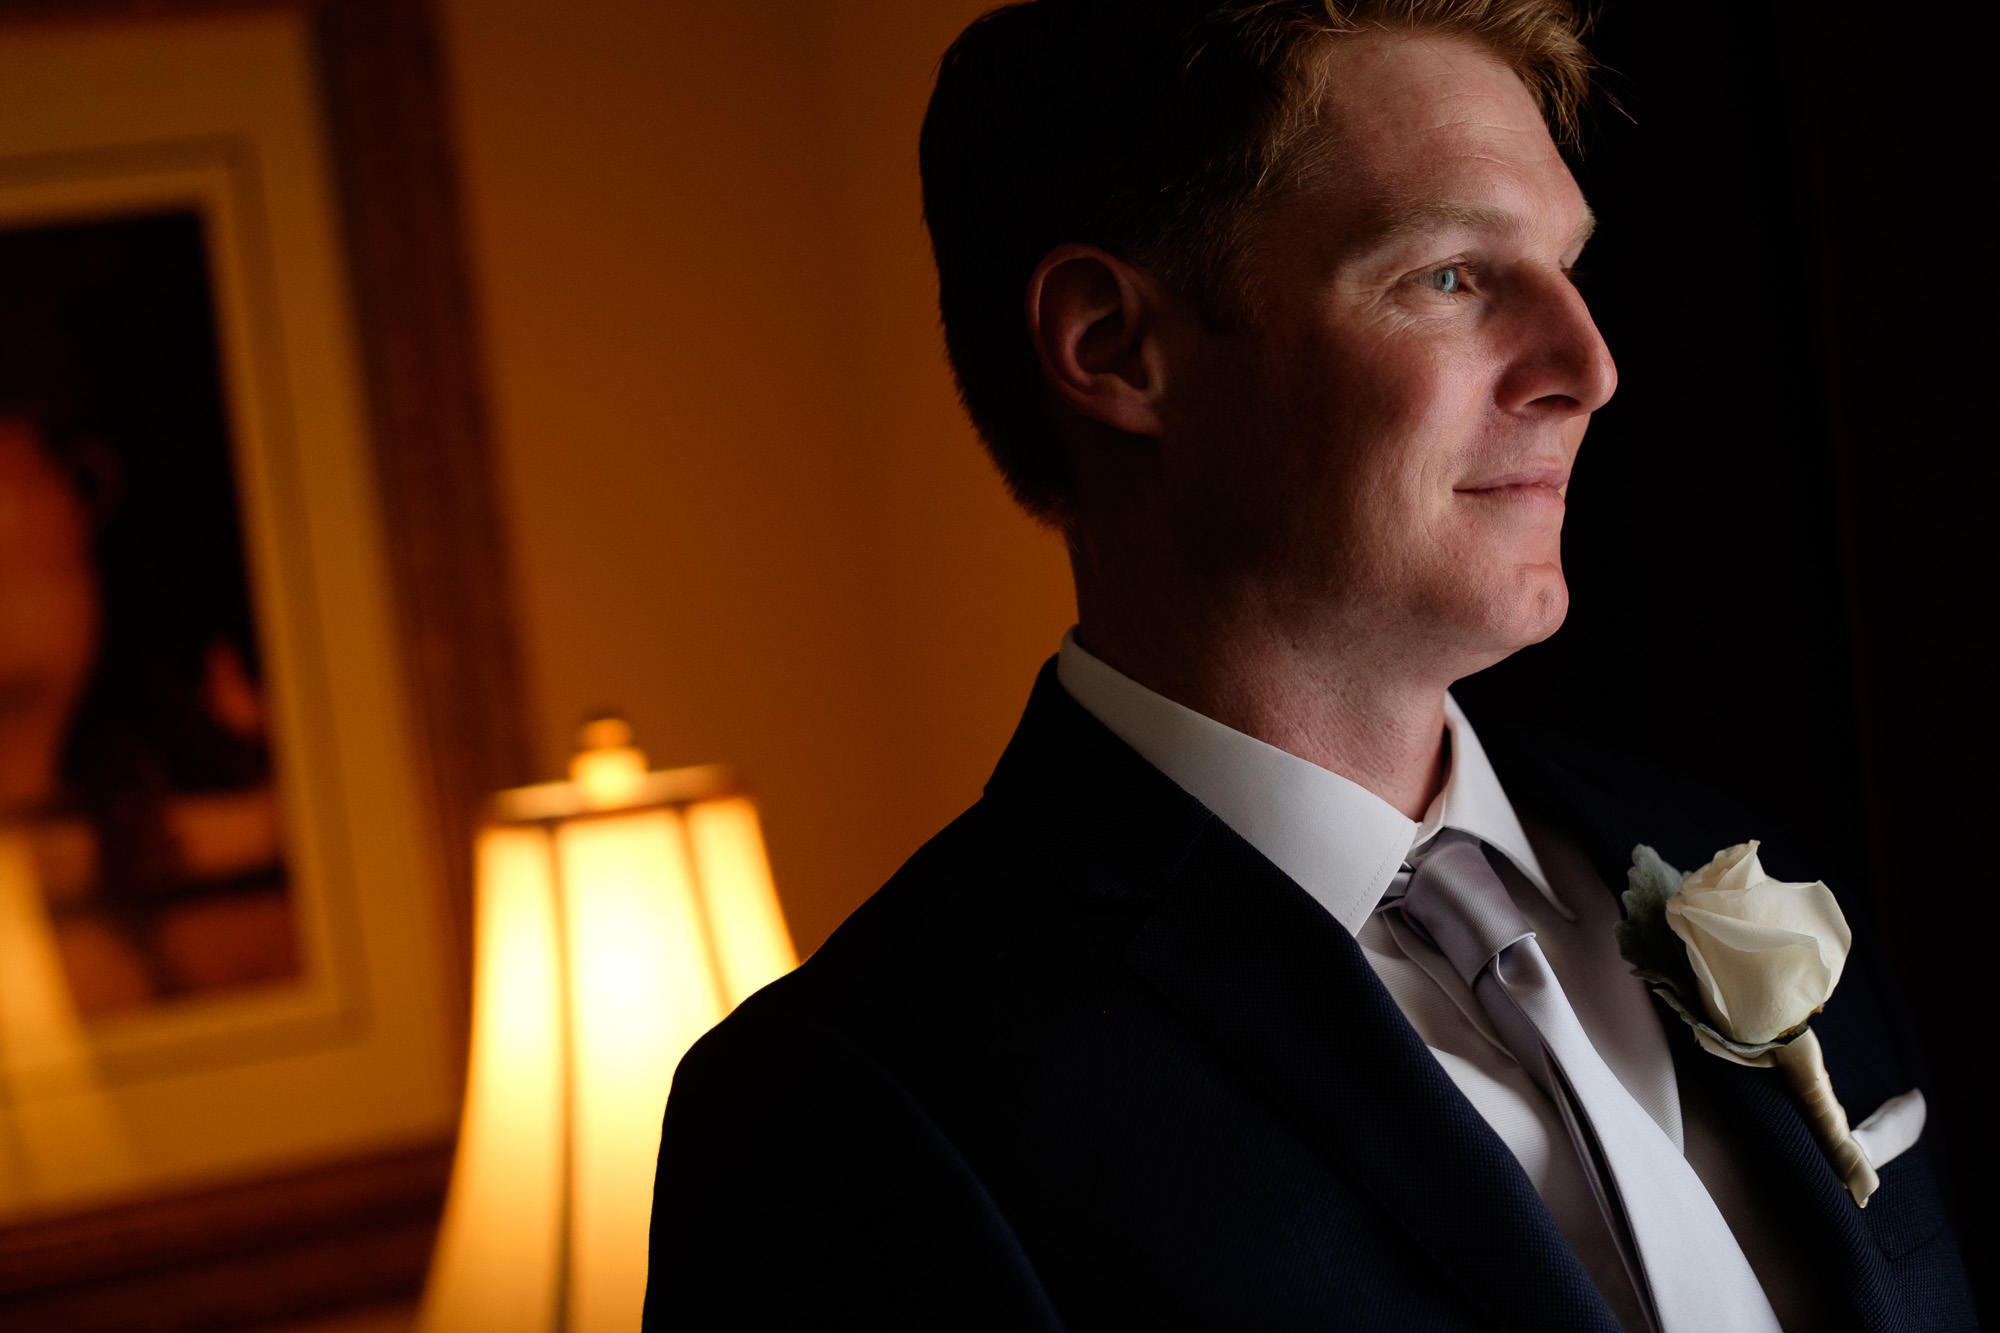 Chris poses for a portrait at his family home before his wedding at the Paletta Mansion in Mississauga.